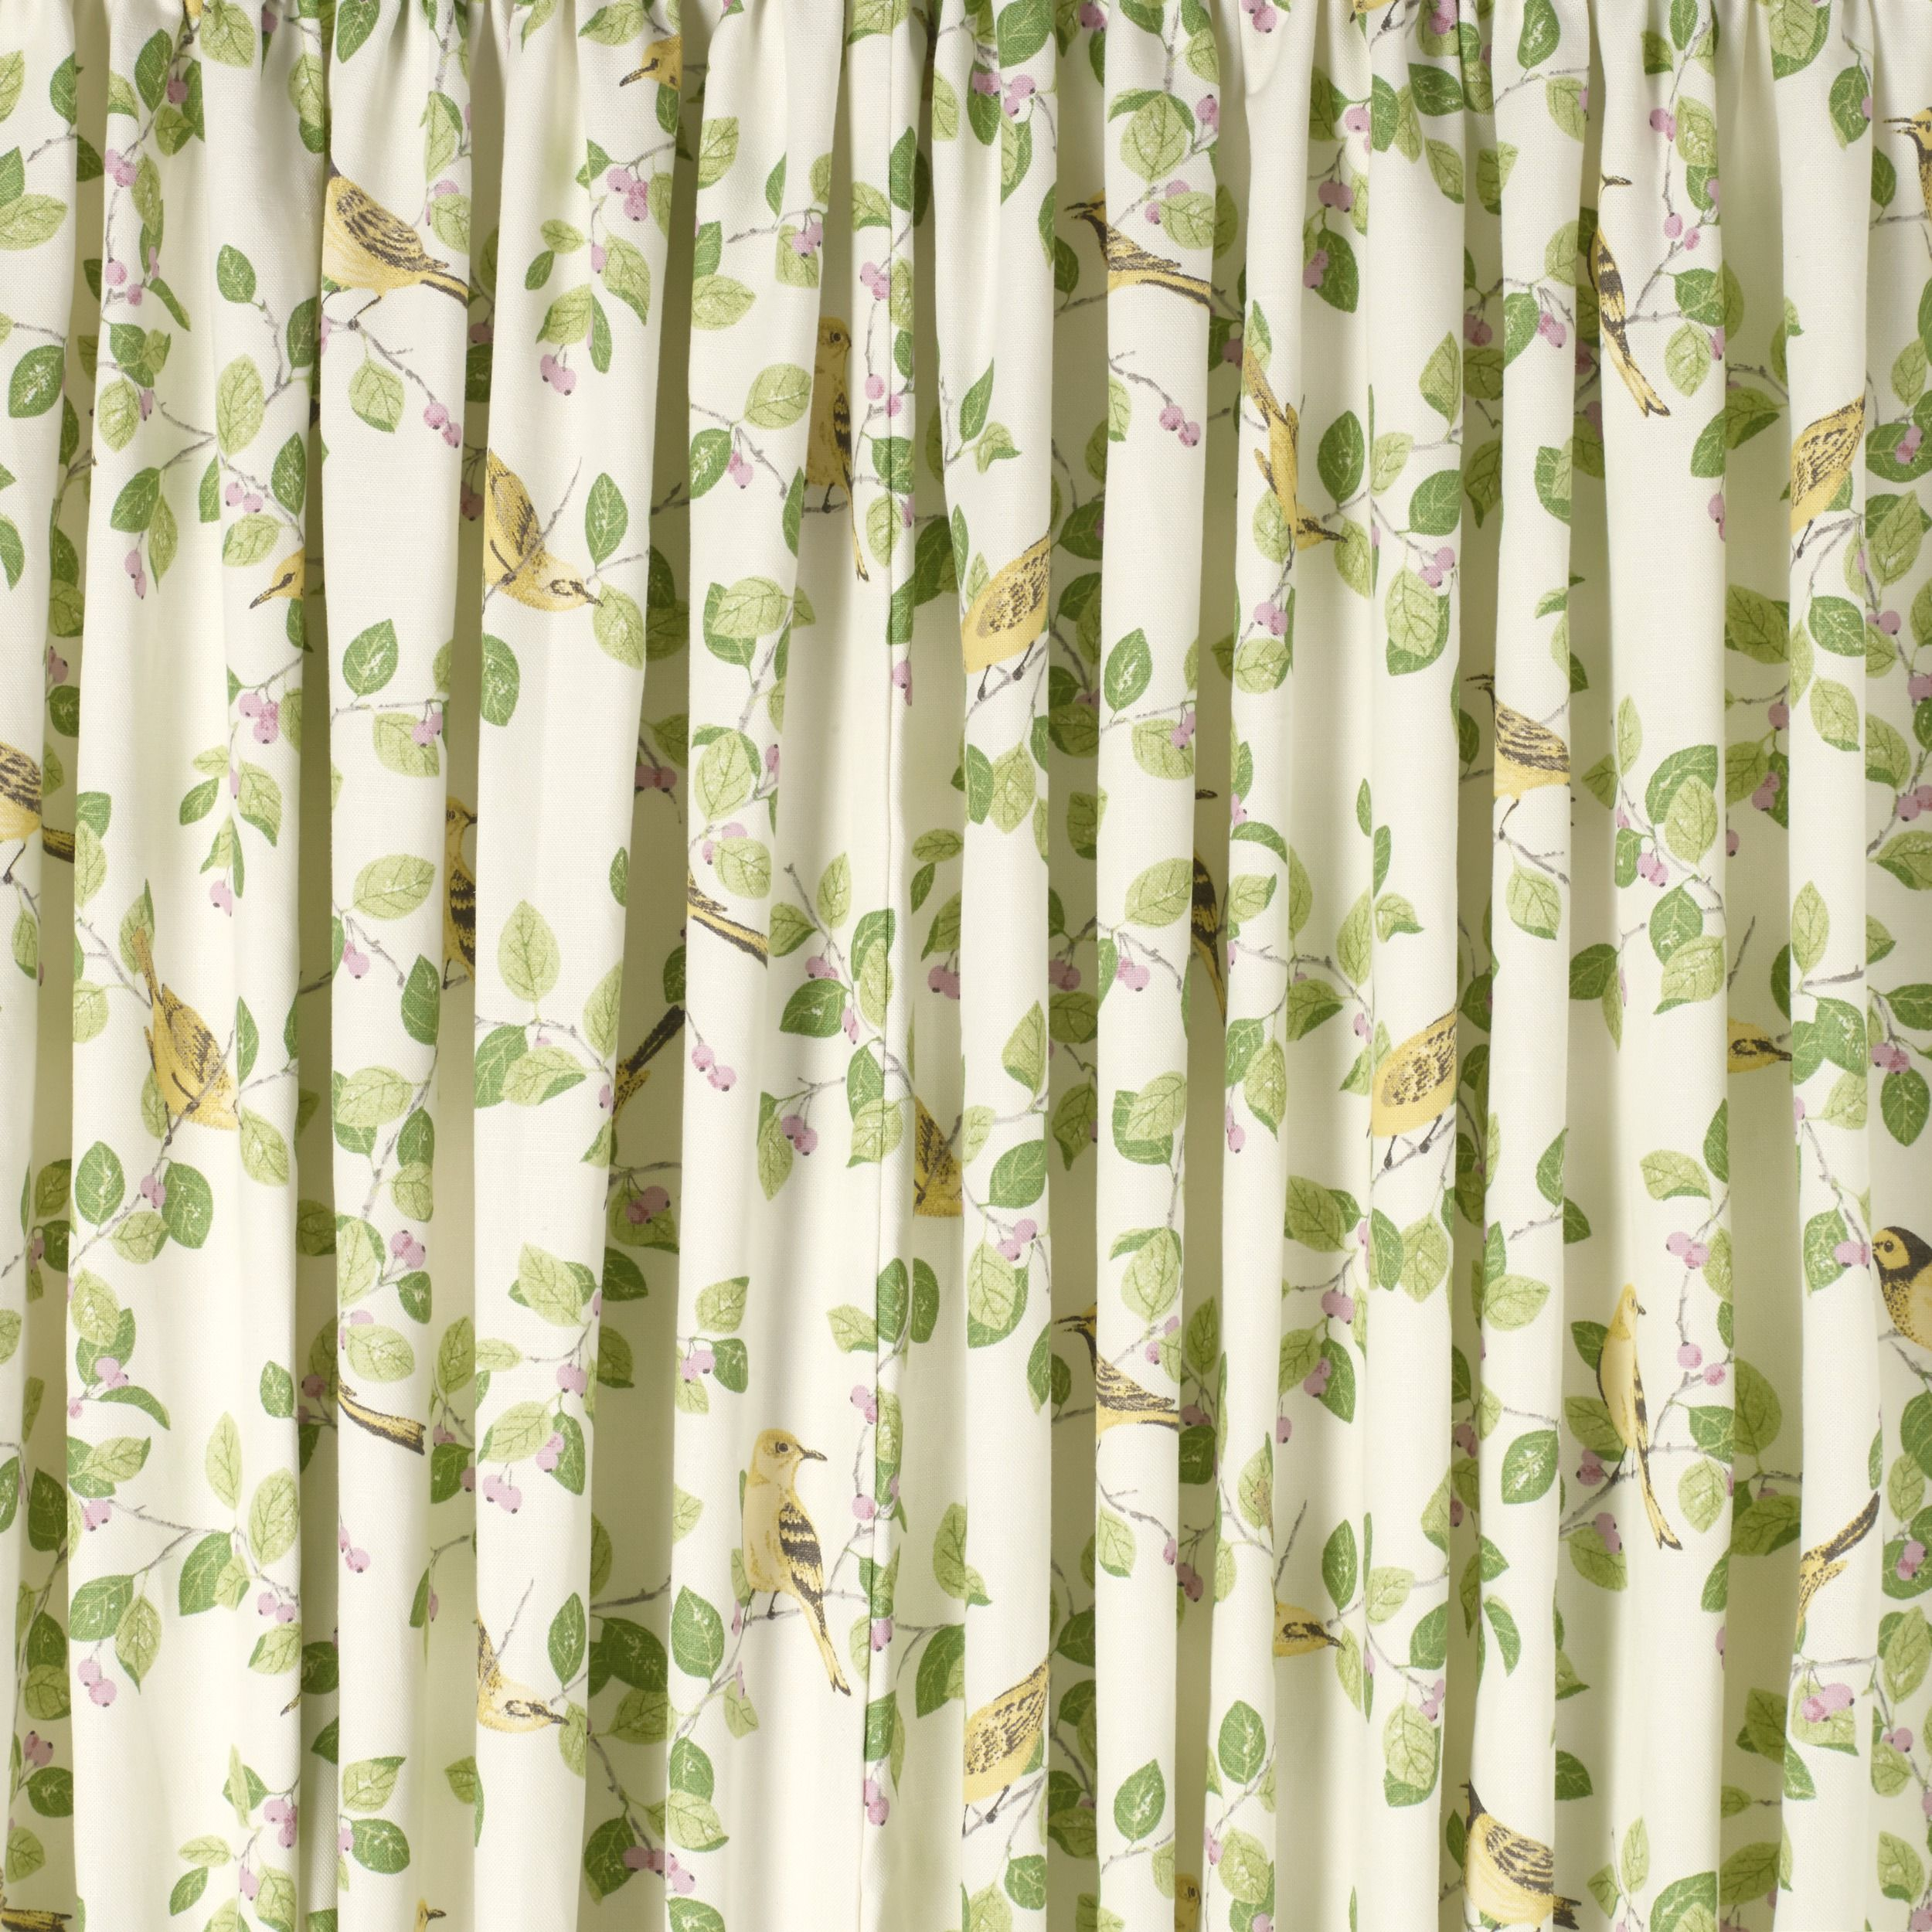 aviary curtains laura ashley new house ideas. Black Bedroom Furniture Sets. Home Design Ideas